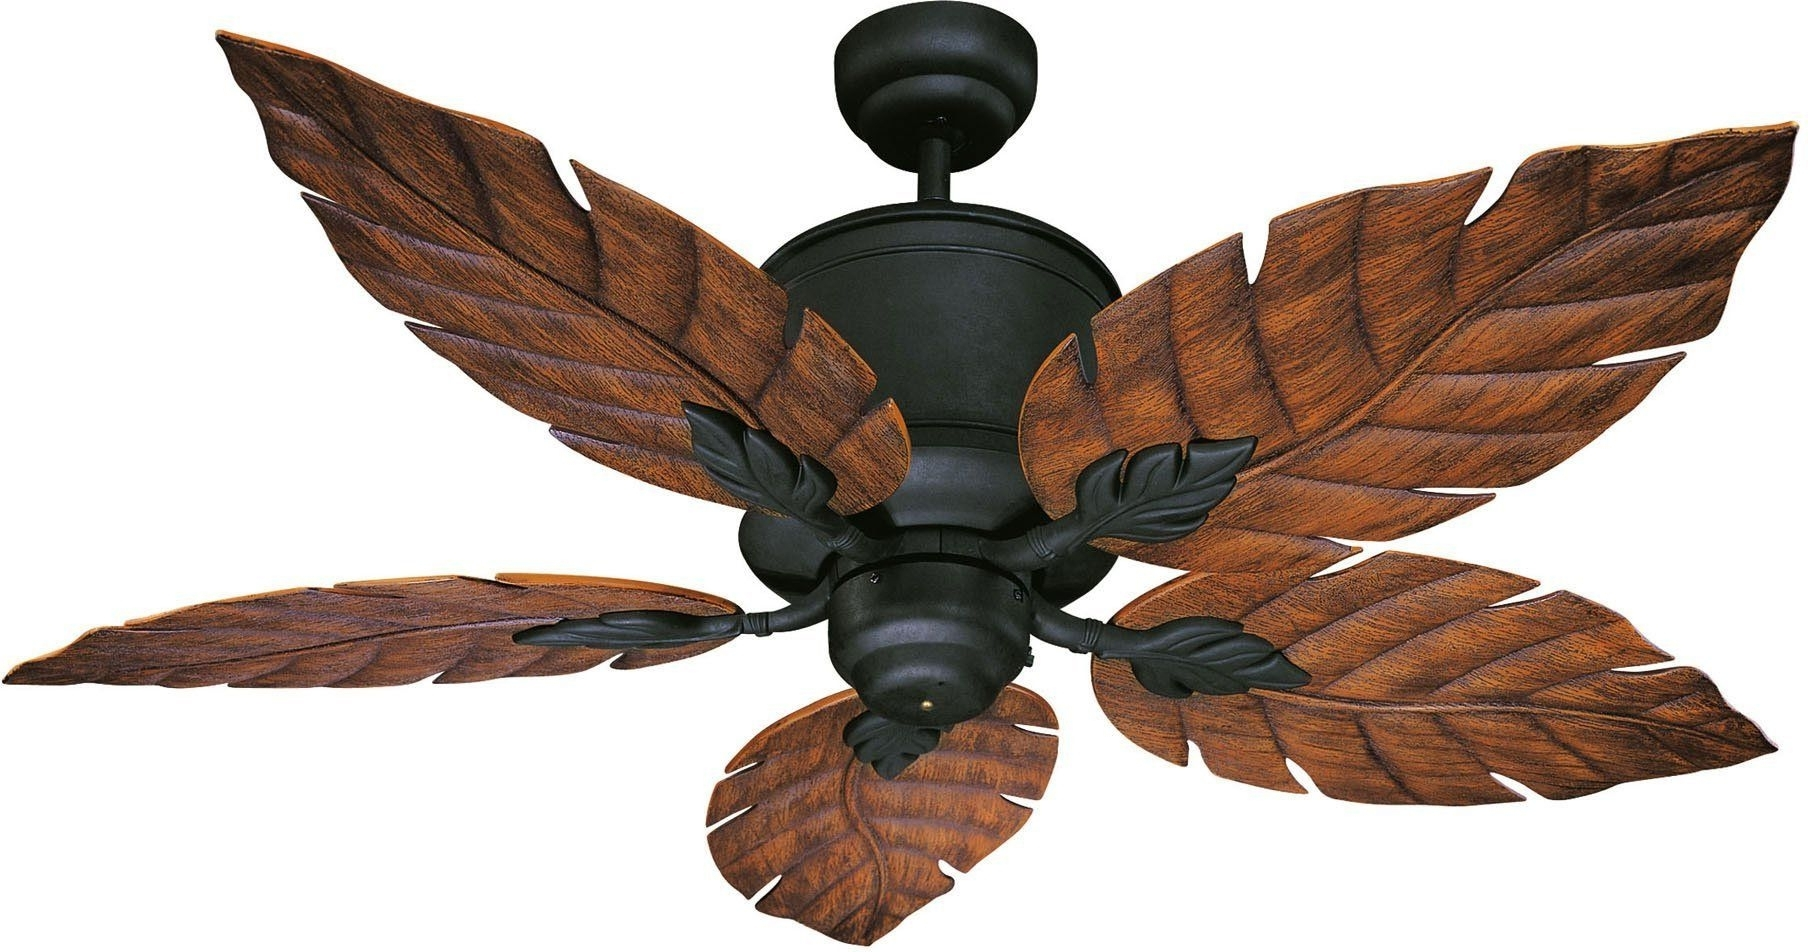 "Horseshoe Black Portico Portico 52"" Five Blade Outdoor Ceiling Fan Inside Most Up To Date Leaf Blades Outdoor Ceiling Fans (View 8 of 20)"